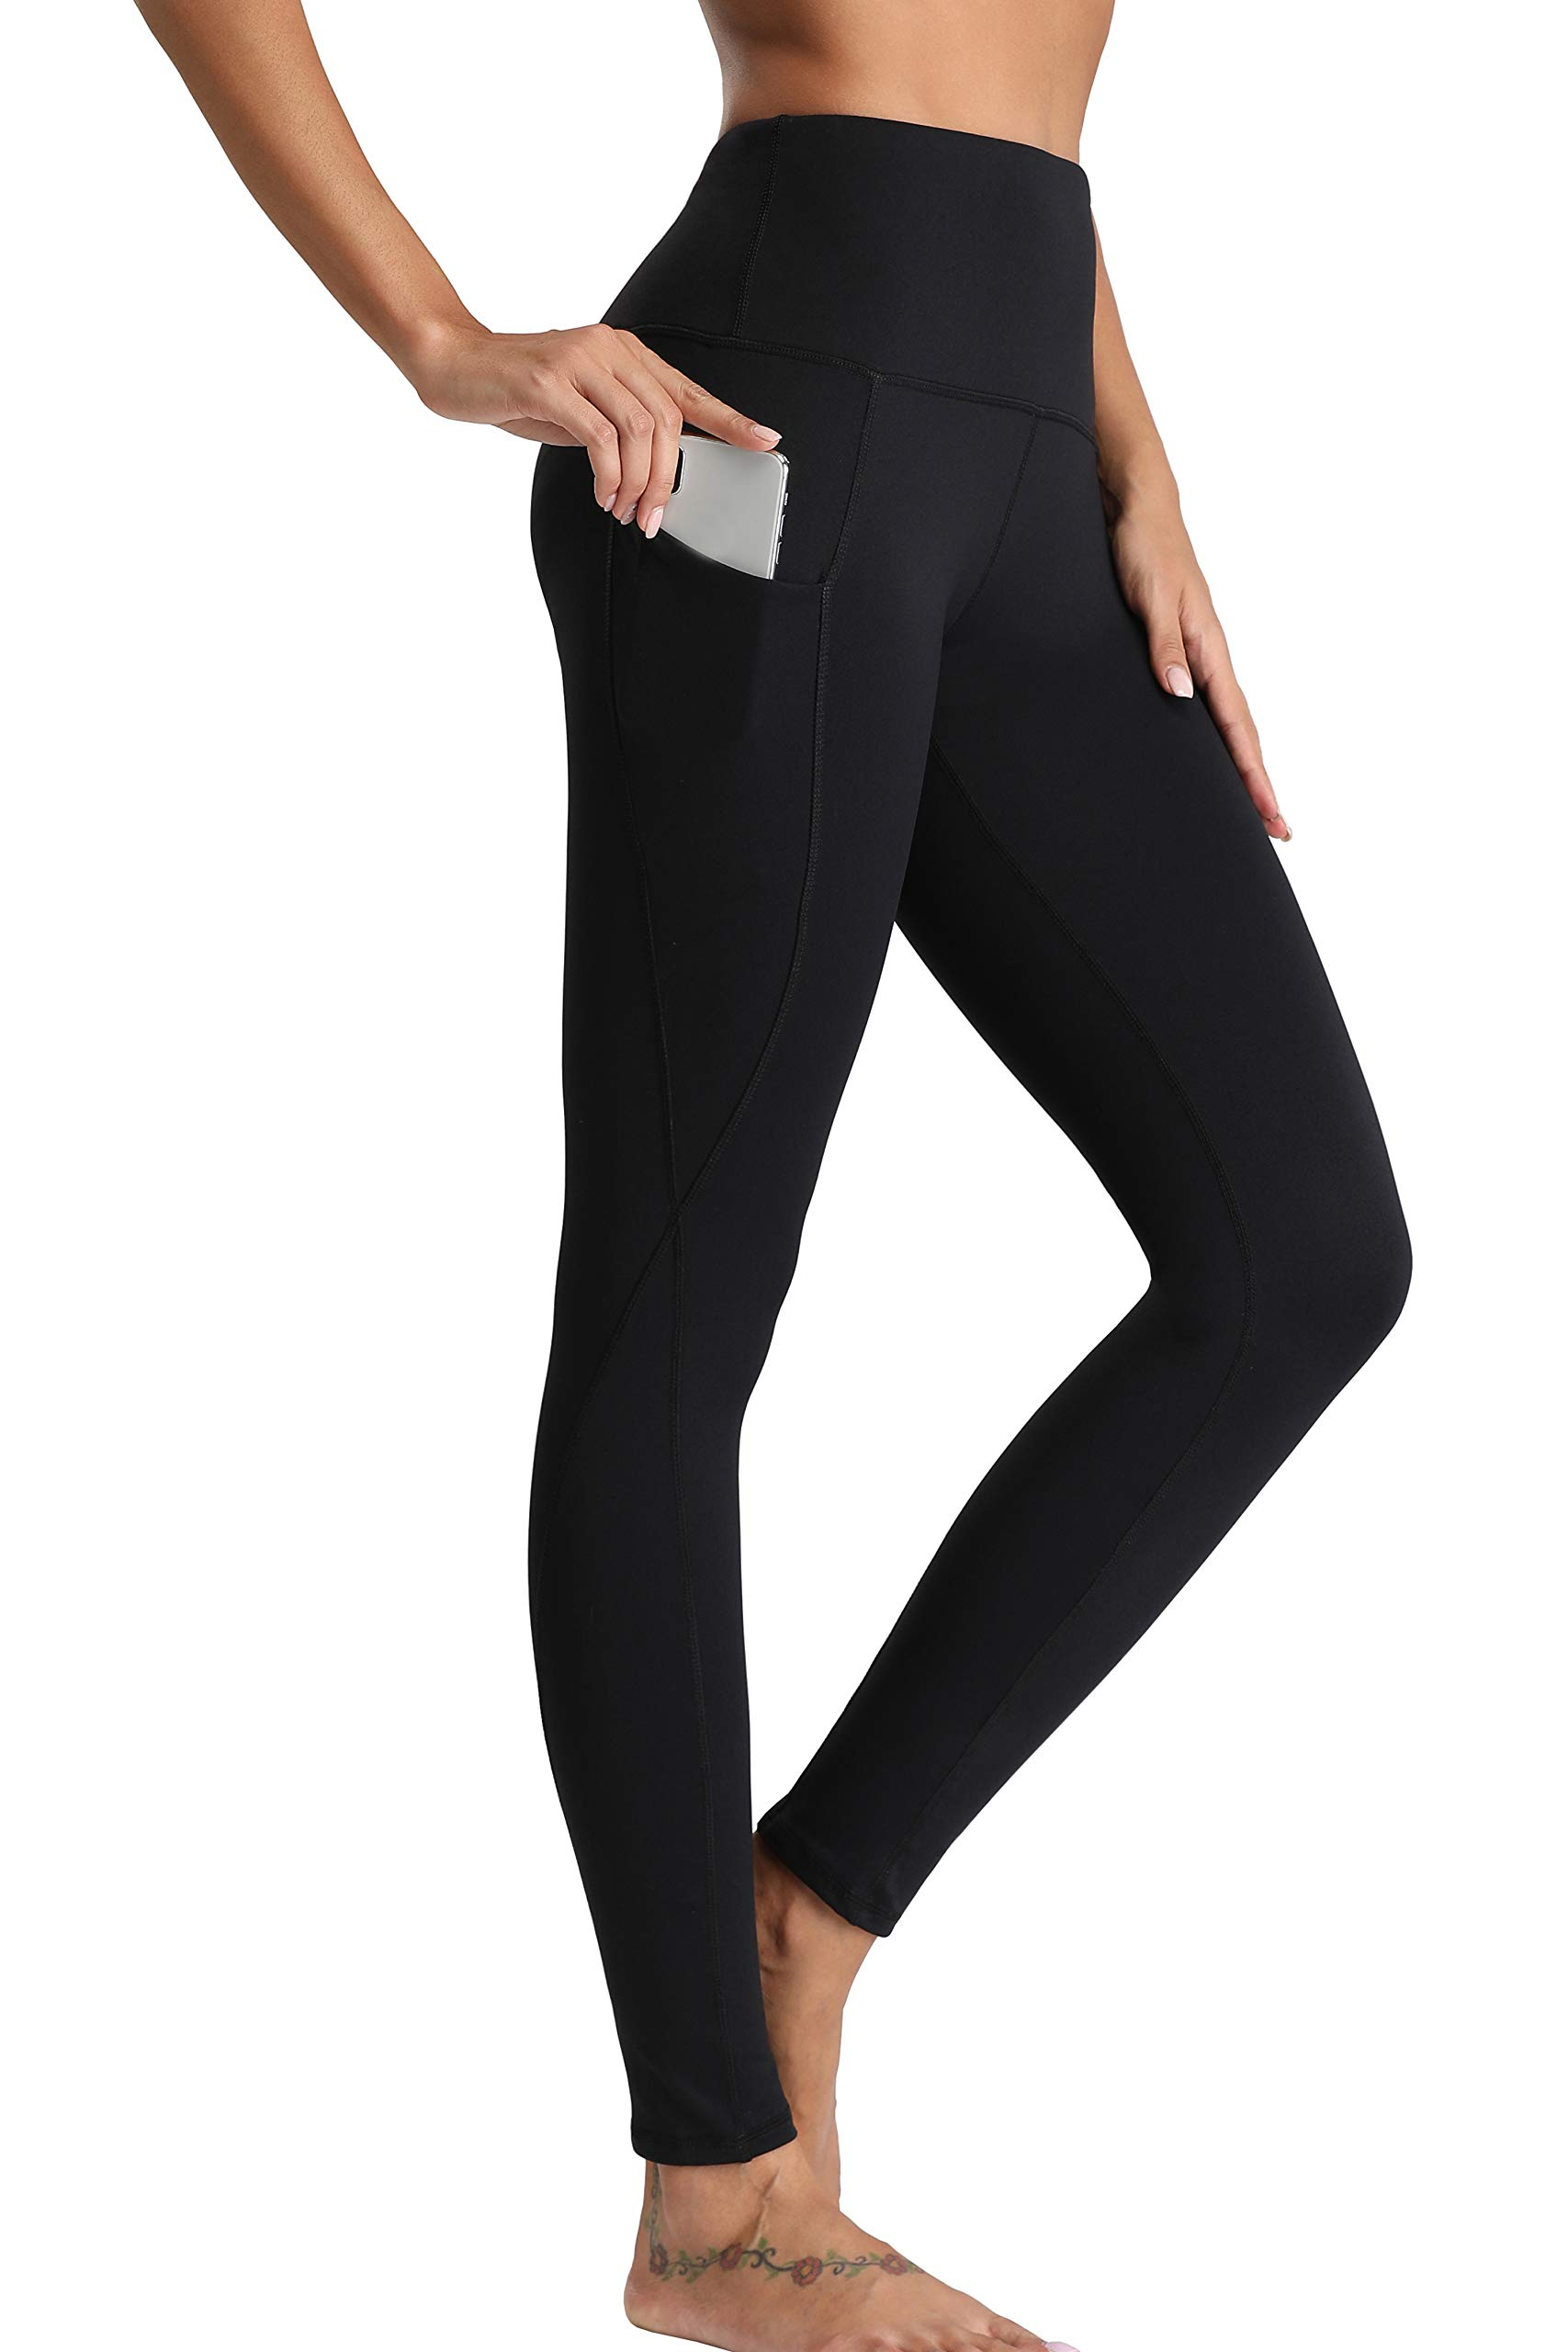 Oalka Women Power Flex Yoga Pants Workout Running Leggings - Outside Pockets Black L by Oalka